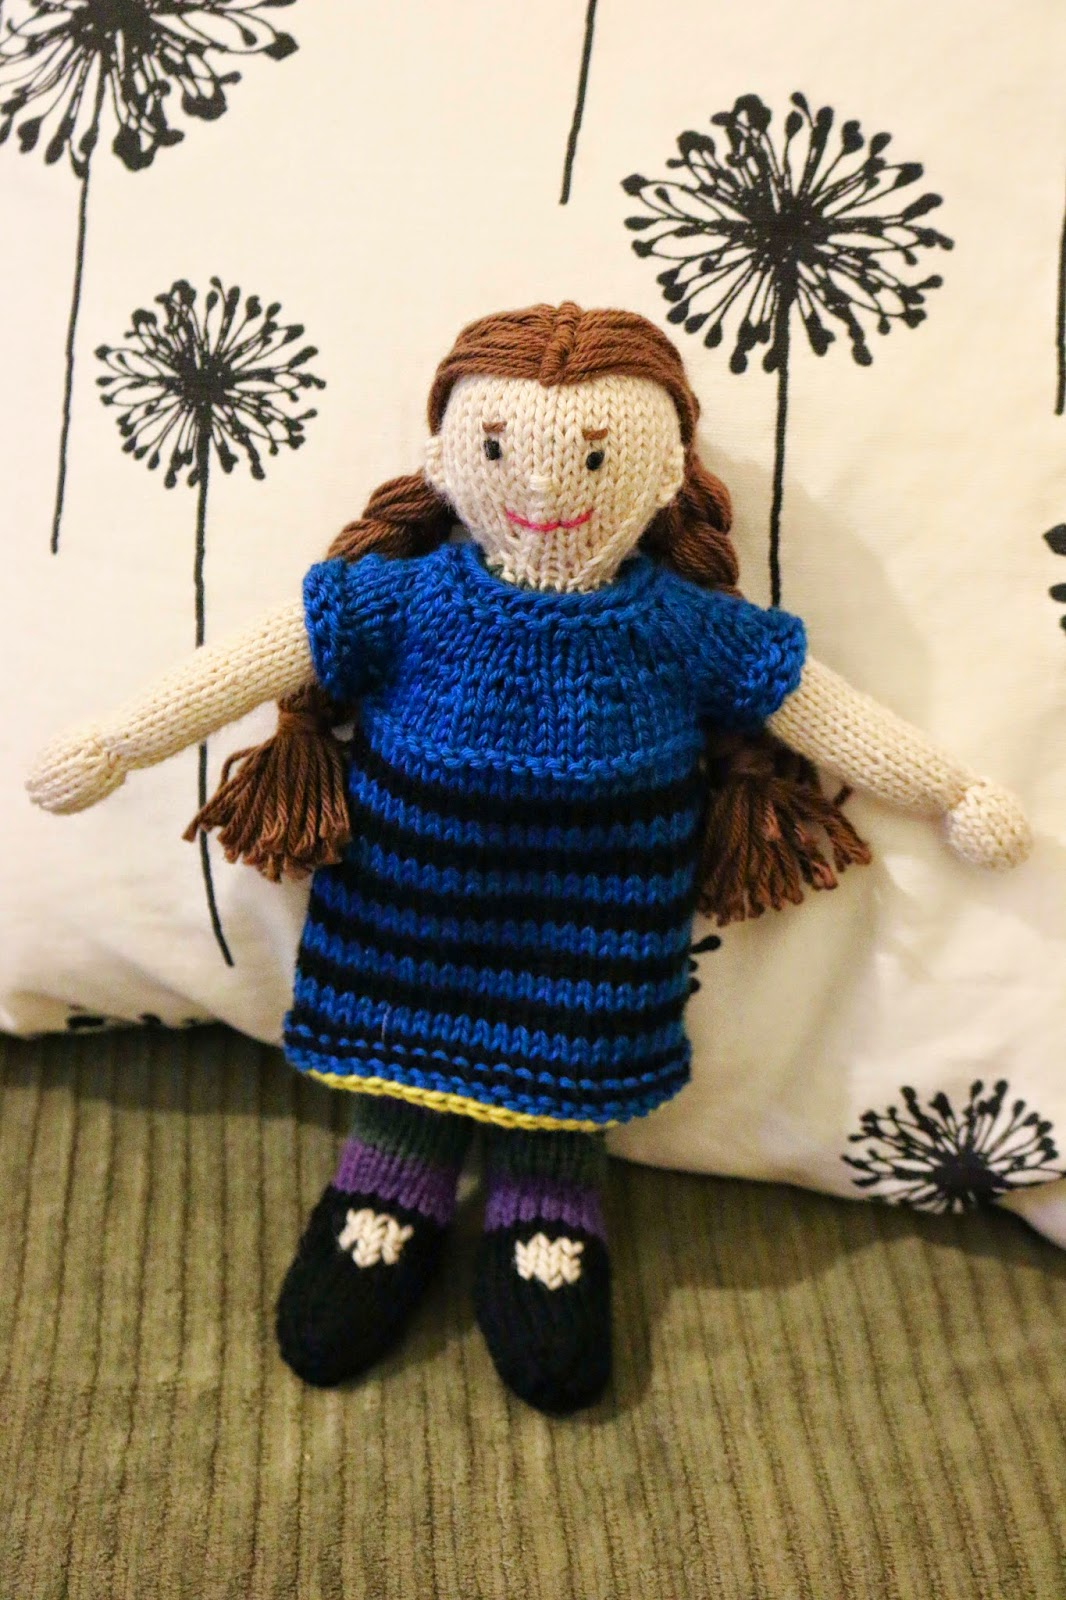 Chemknits july 2015 after i finished millies striped dress i realized that i wanted to add another piece to her outfit a shawl the shape is that of a basic triangular shawl fandeluxe Gallery